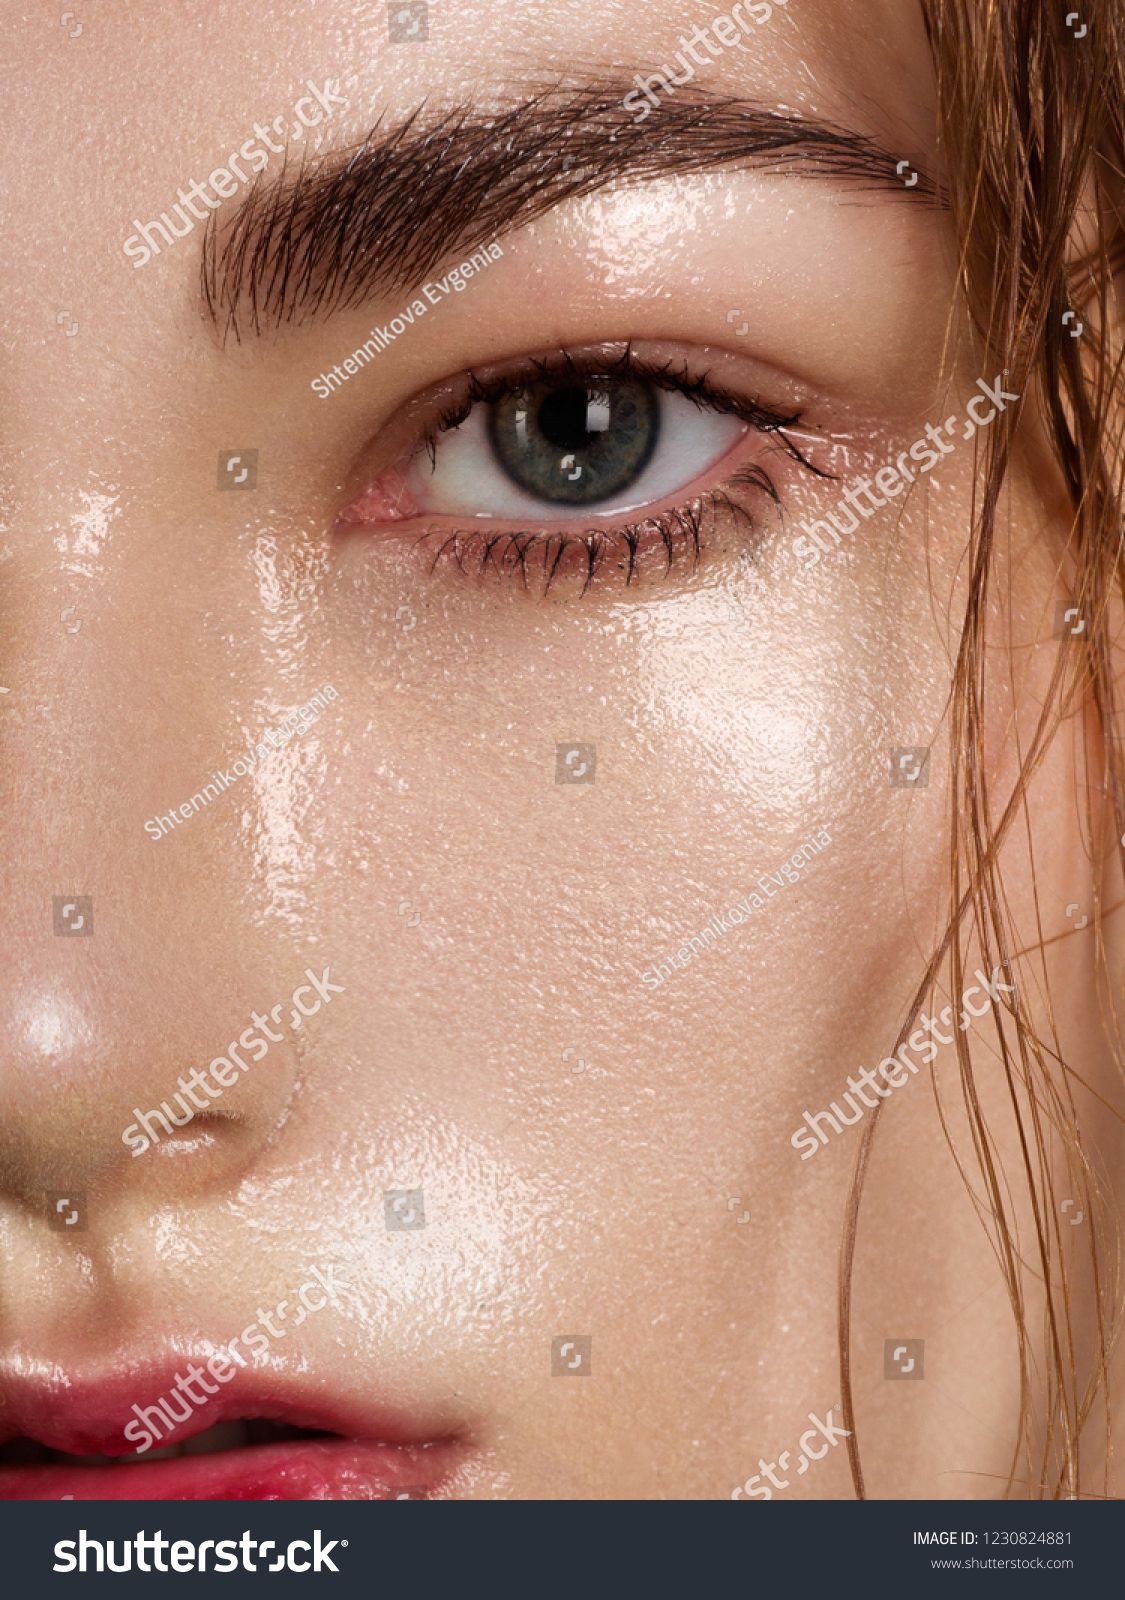 Close up beauty of a half face of a woman with wet radiant